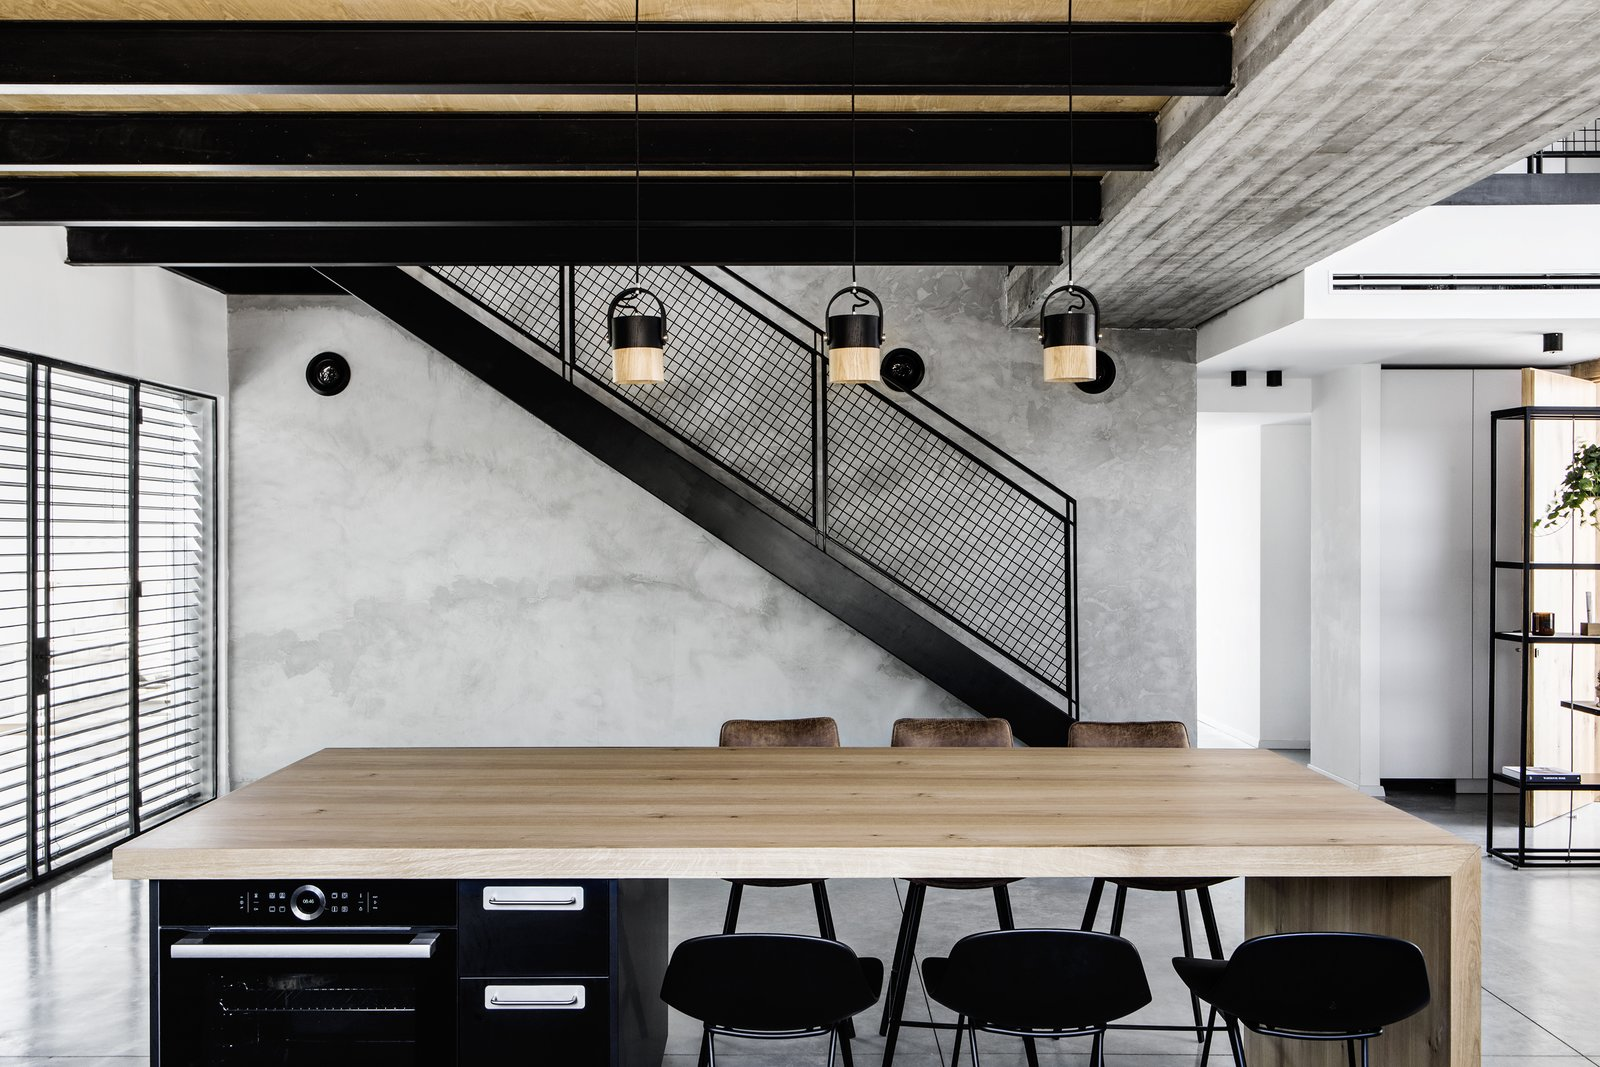 Dining Room, Bar, Stools, Ceiling Lighting, Pendant Lighting, and Concrete Floor Metal staircase on concrete wall. Hand made lighting fixtures by Asaf Weinbroom.   Nir Am House by Shir Shtaigman